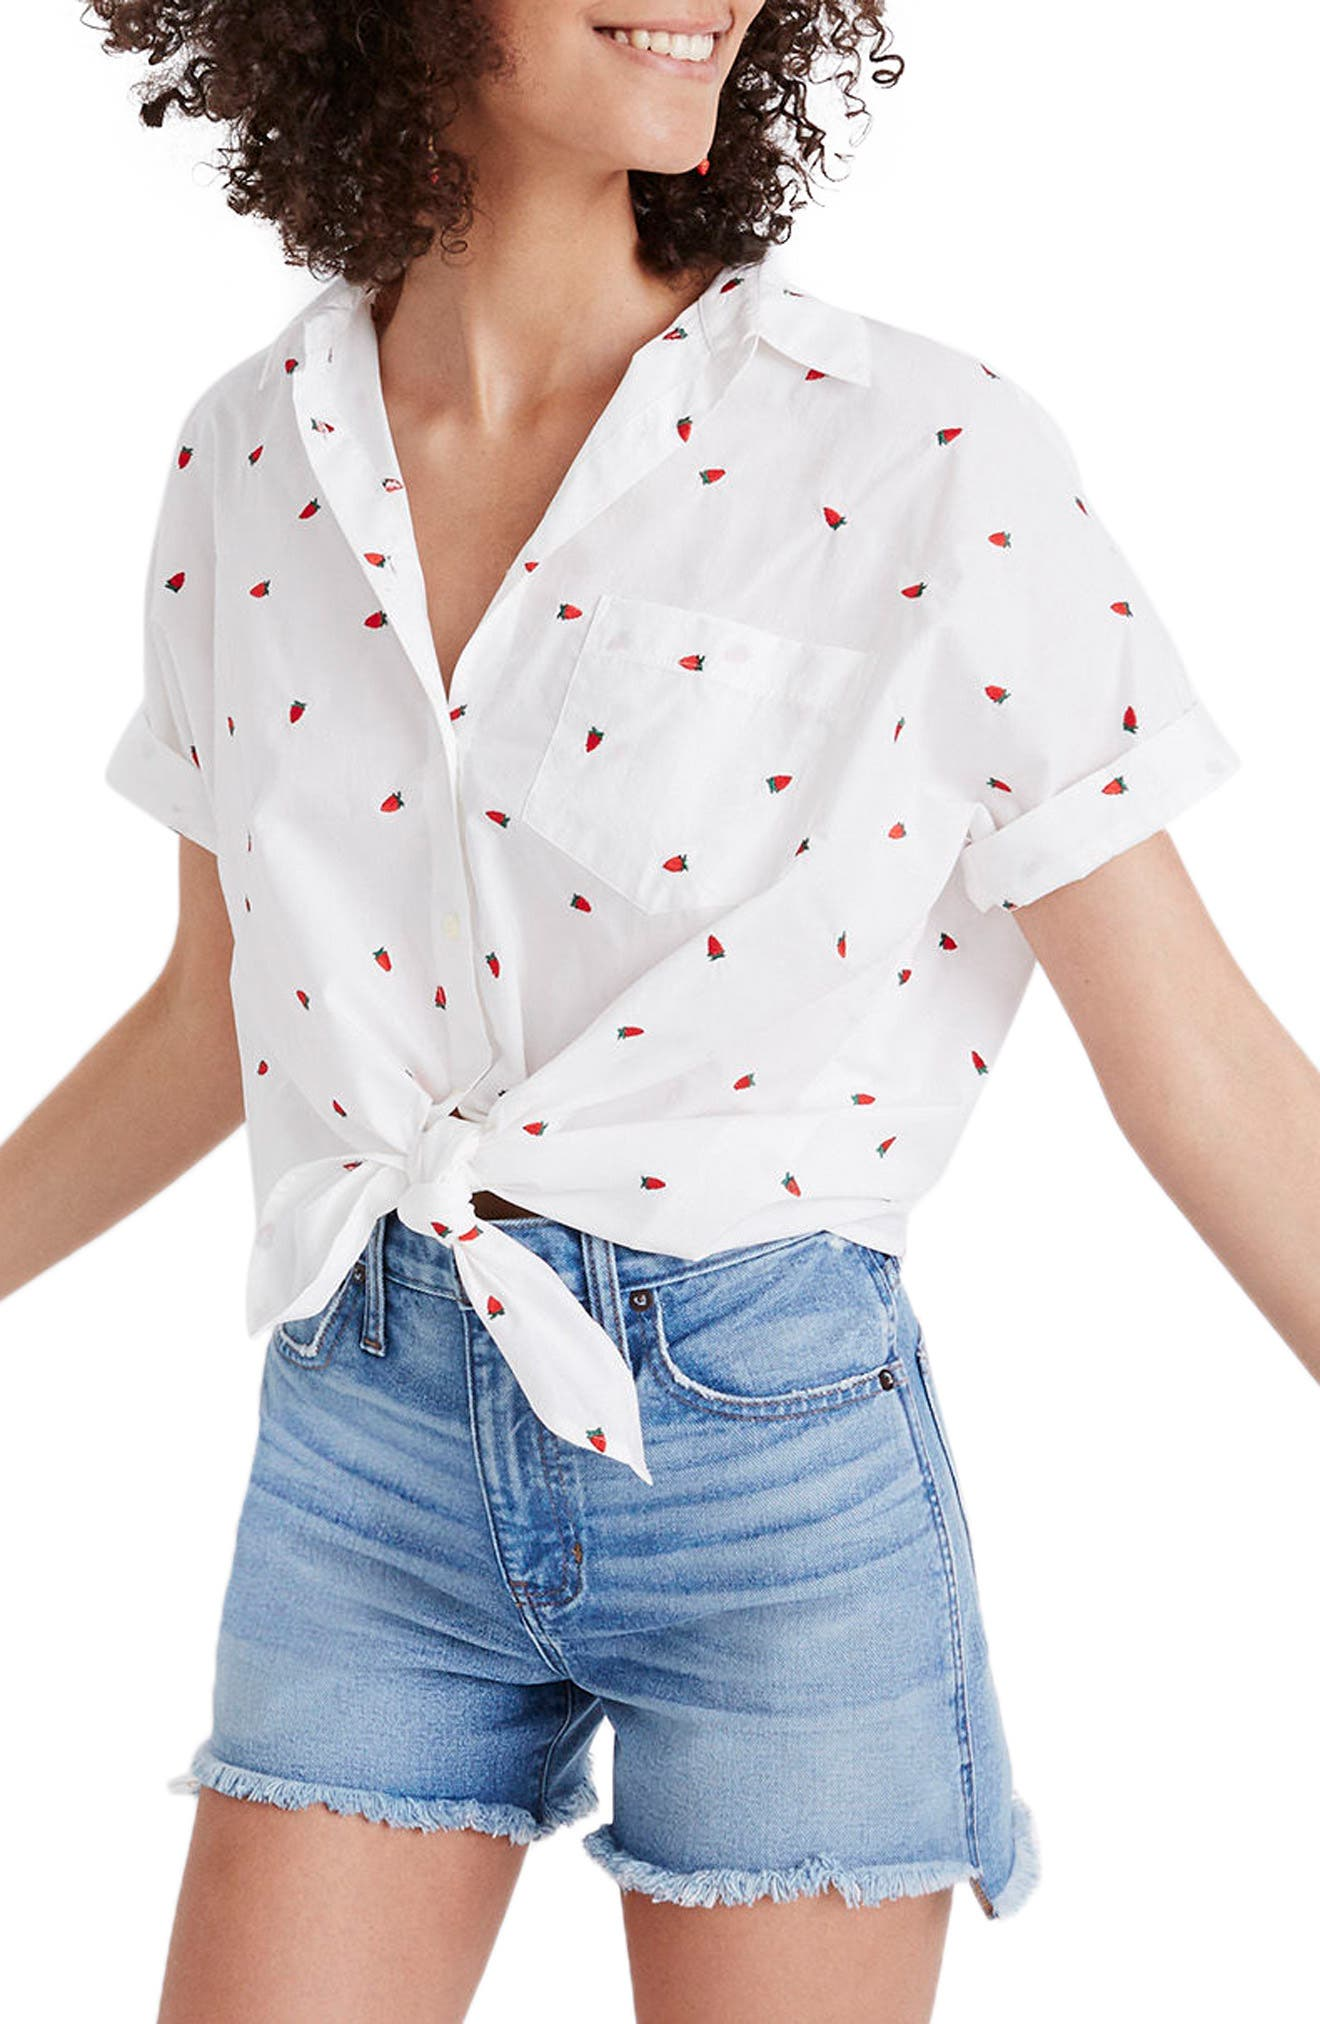 Strawberry Embroidered Tie Front Shirt,                             Main thumbnail 1, color,                             Strawberry Critter White